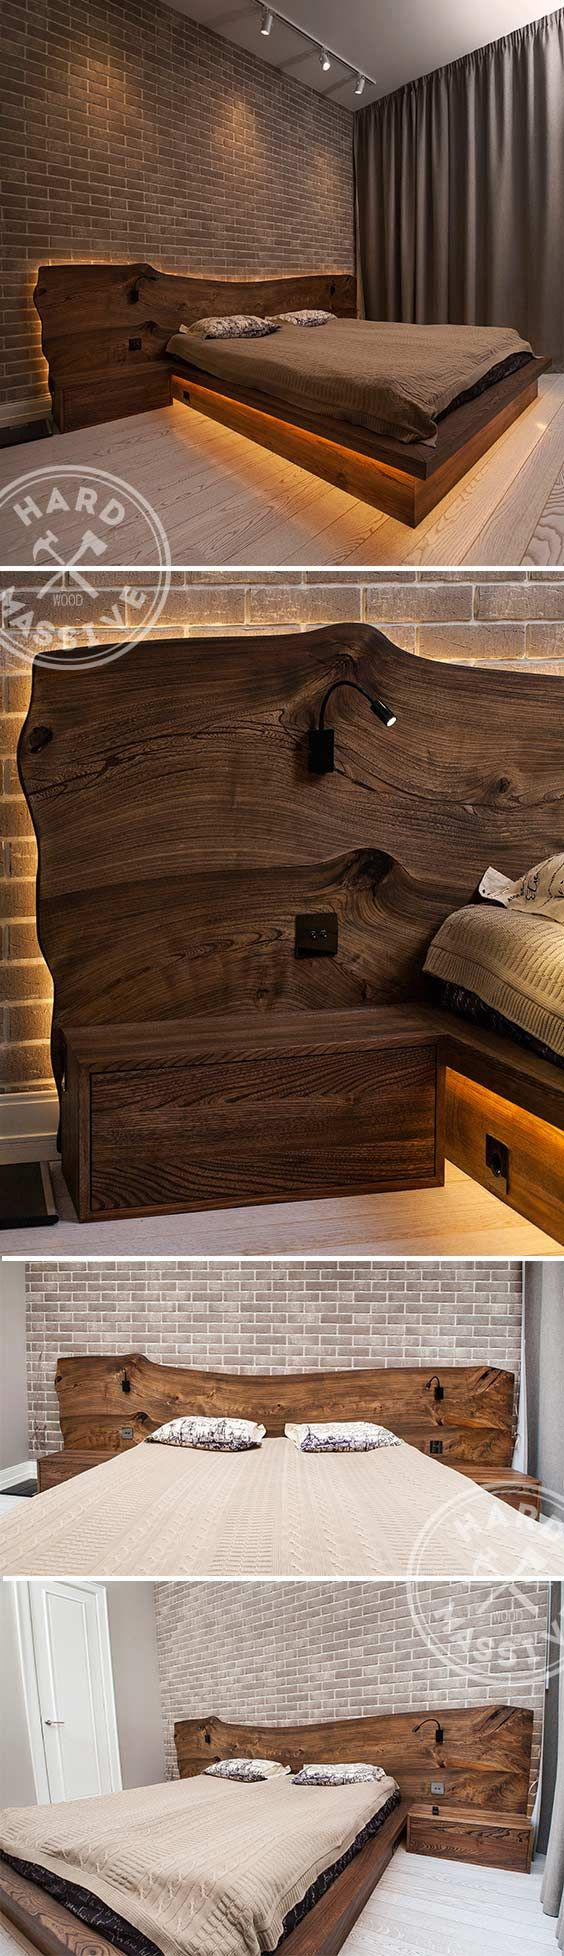 Solid Wood American Made Bedroom Furniture 17 Best Ideas About Solid Wood Beds On Pinterest Modern Wood Bed